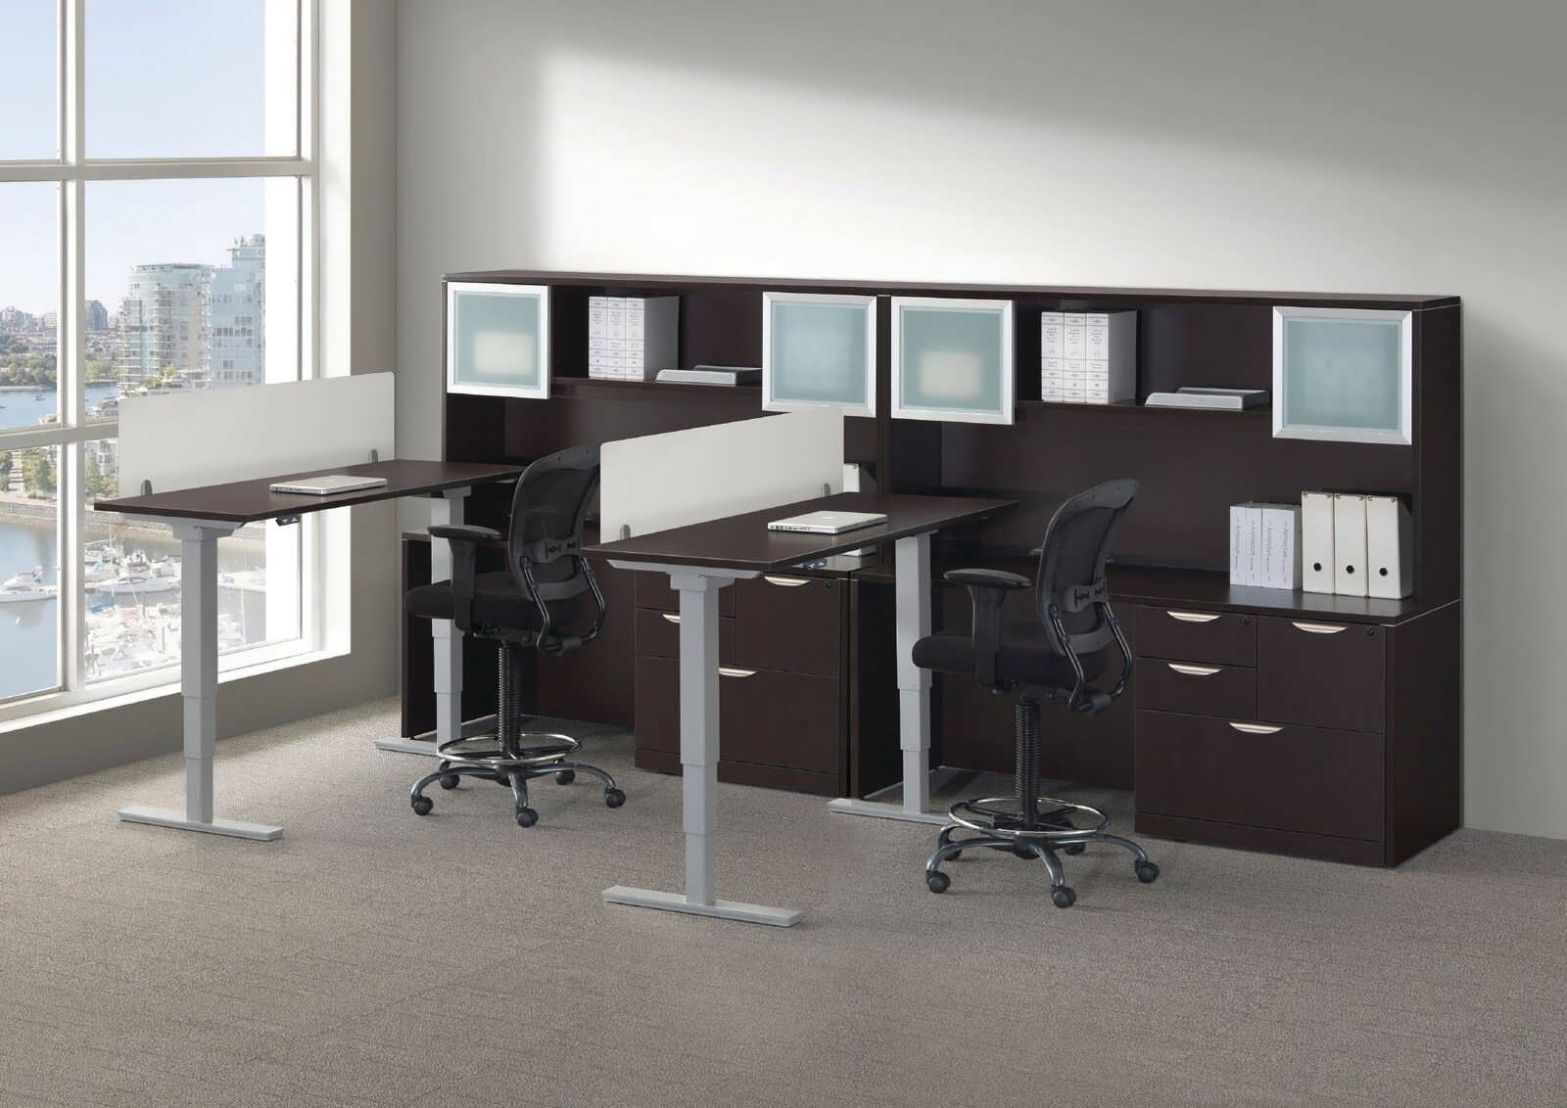 20 used office furniture in indianapolis country home office